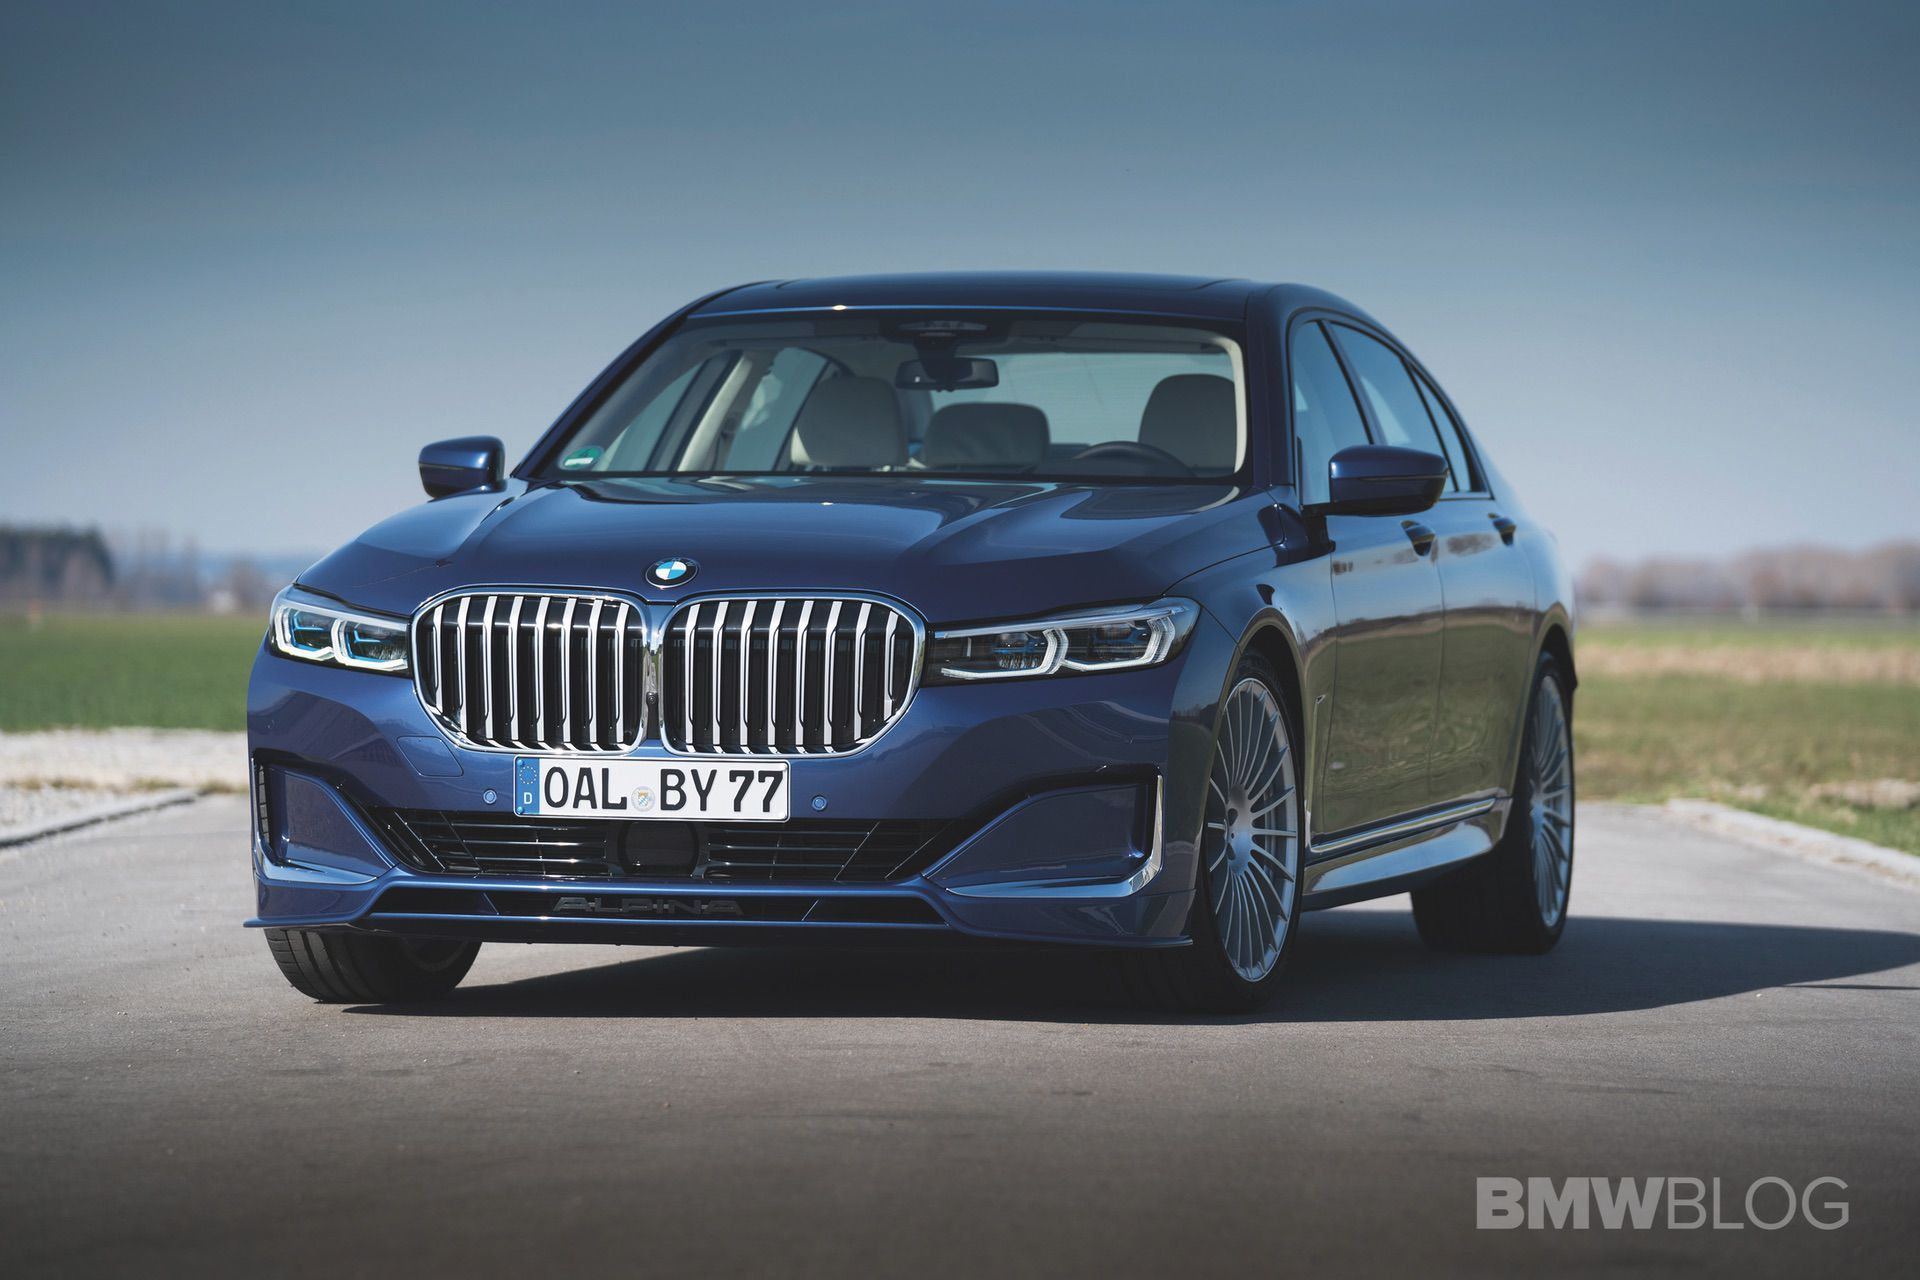 2020 Alpina B7 Xdrive In Alpina Blue A New Photo Gallery Bmw 7